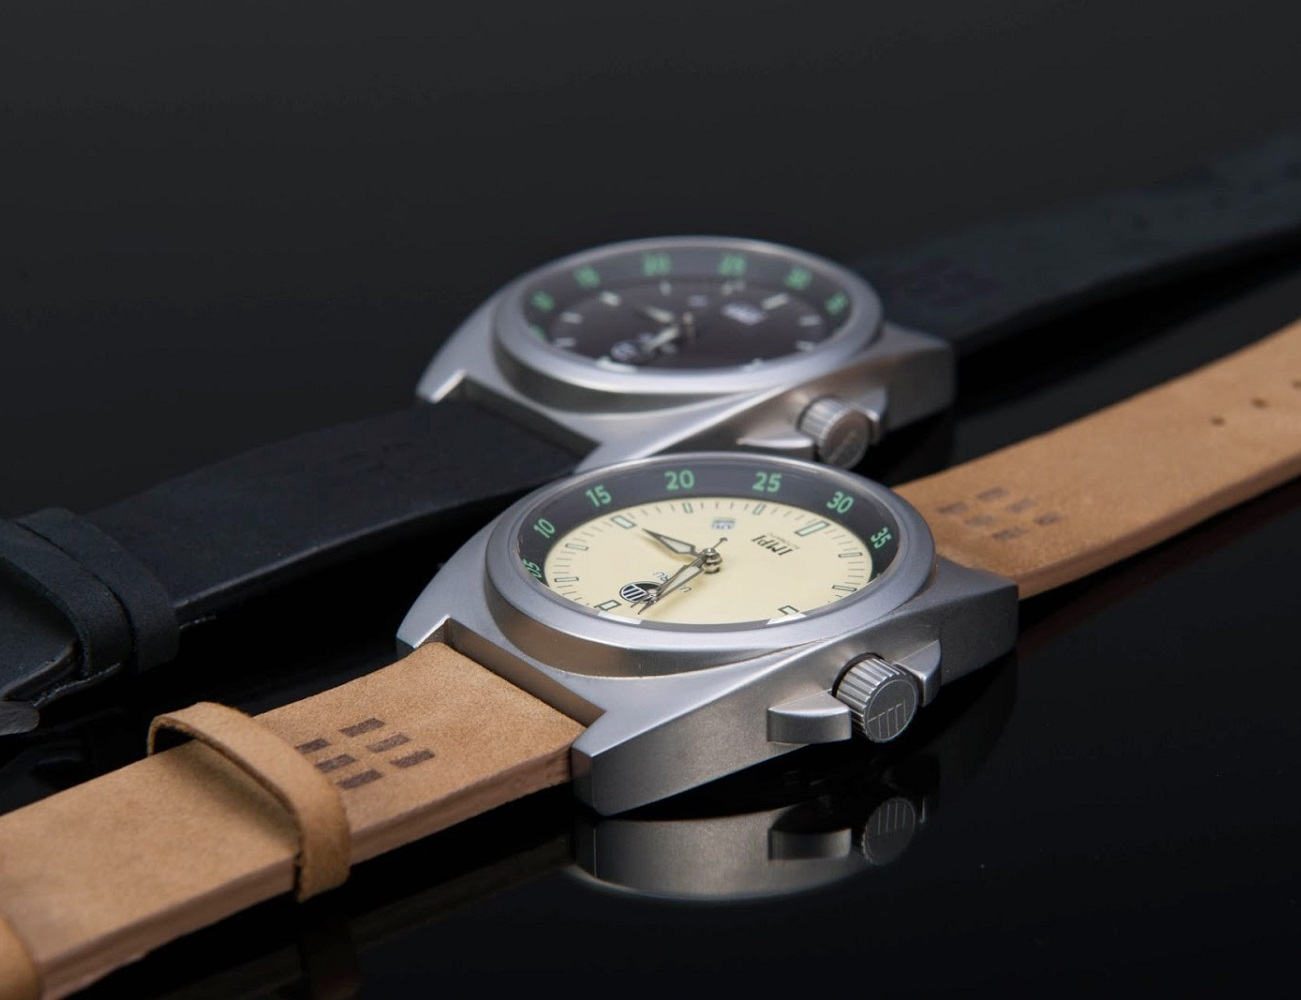 The Impi Automatic